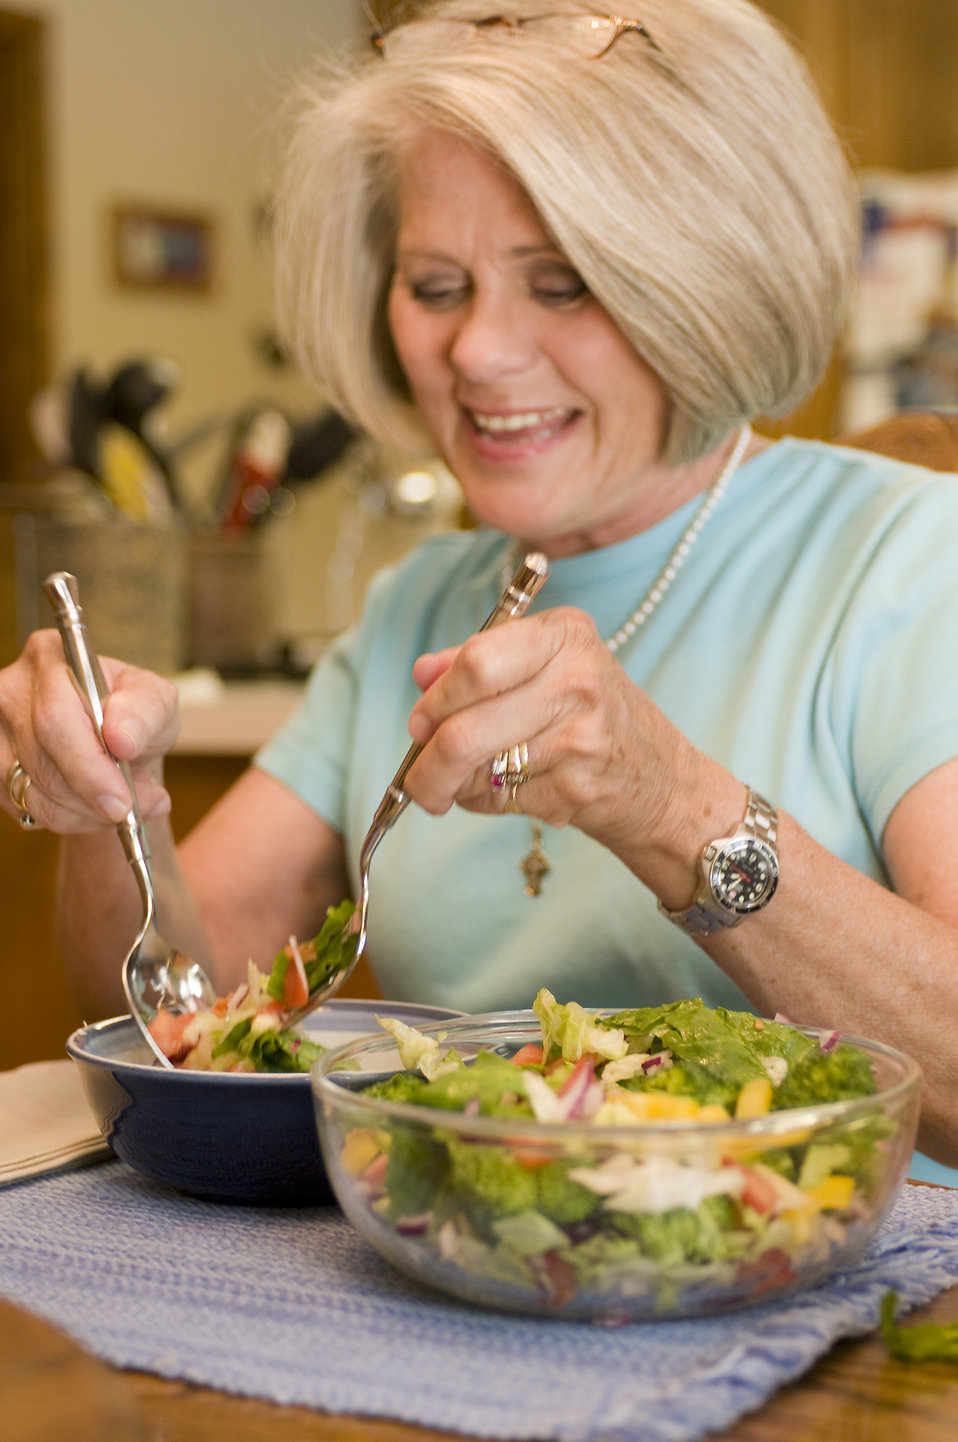 A woman eating a fresh salad : Free Stock Photo